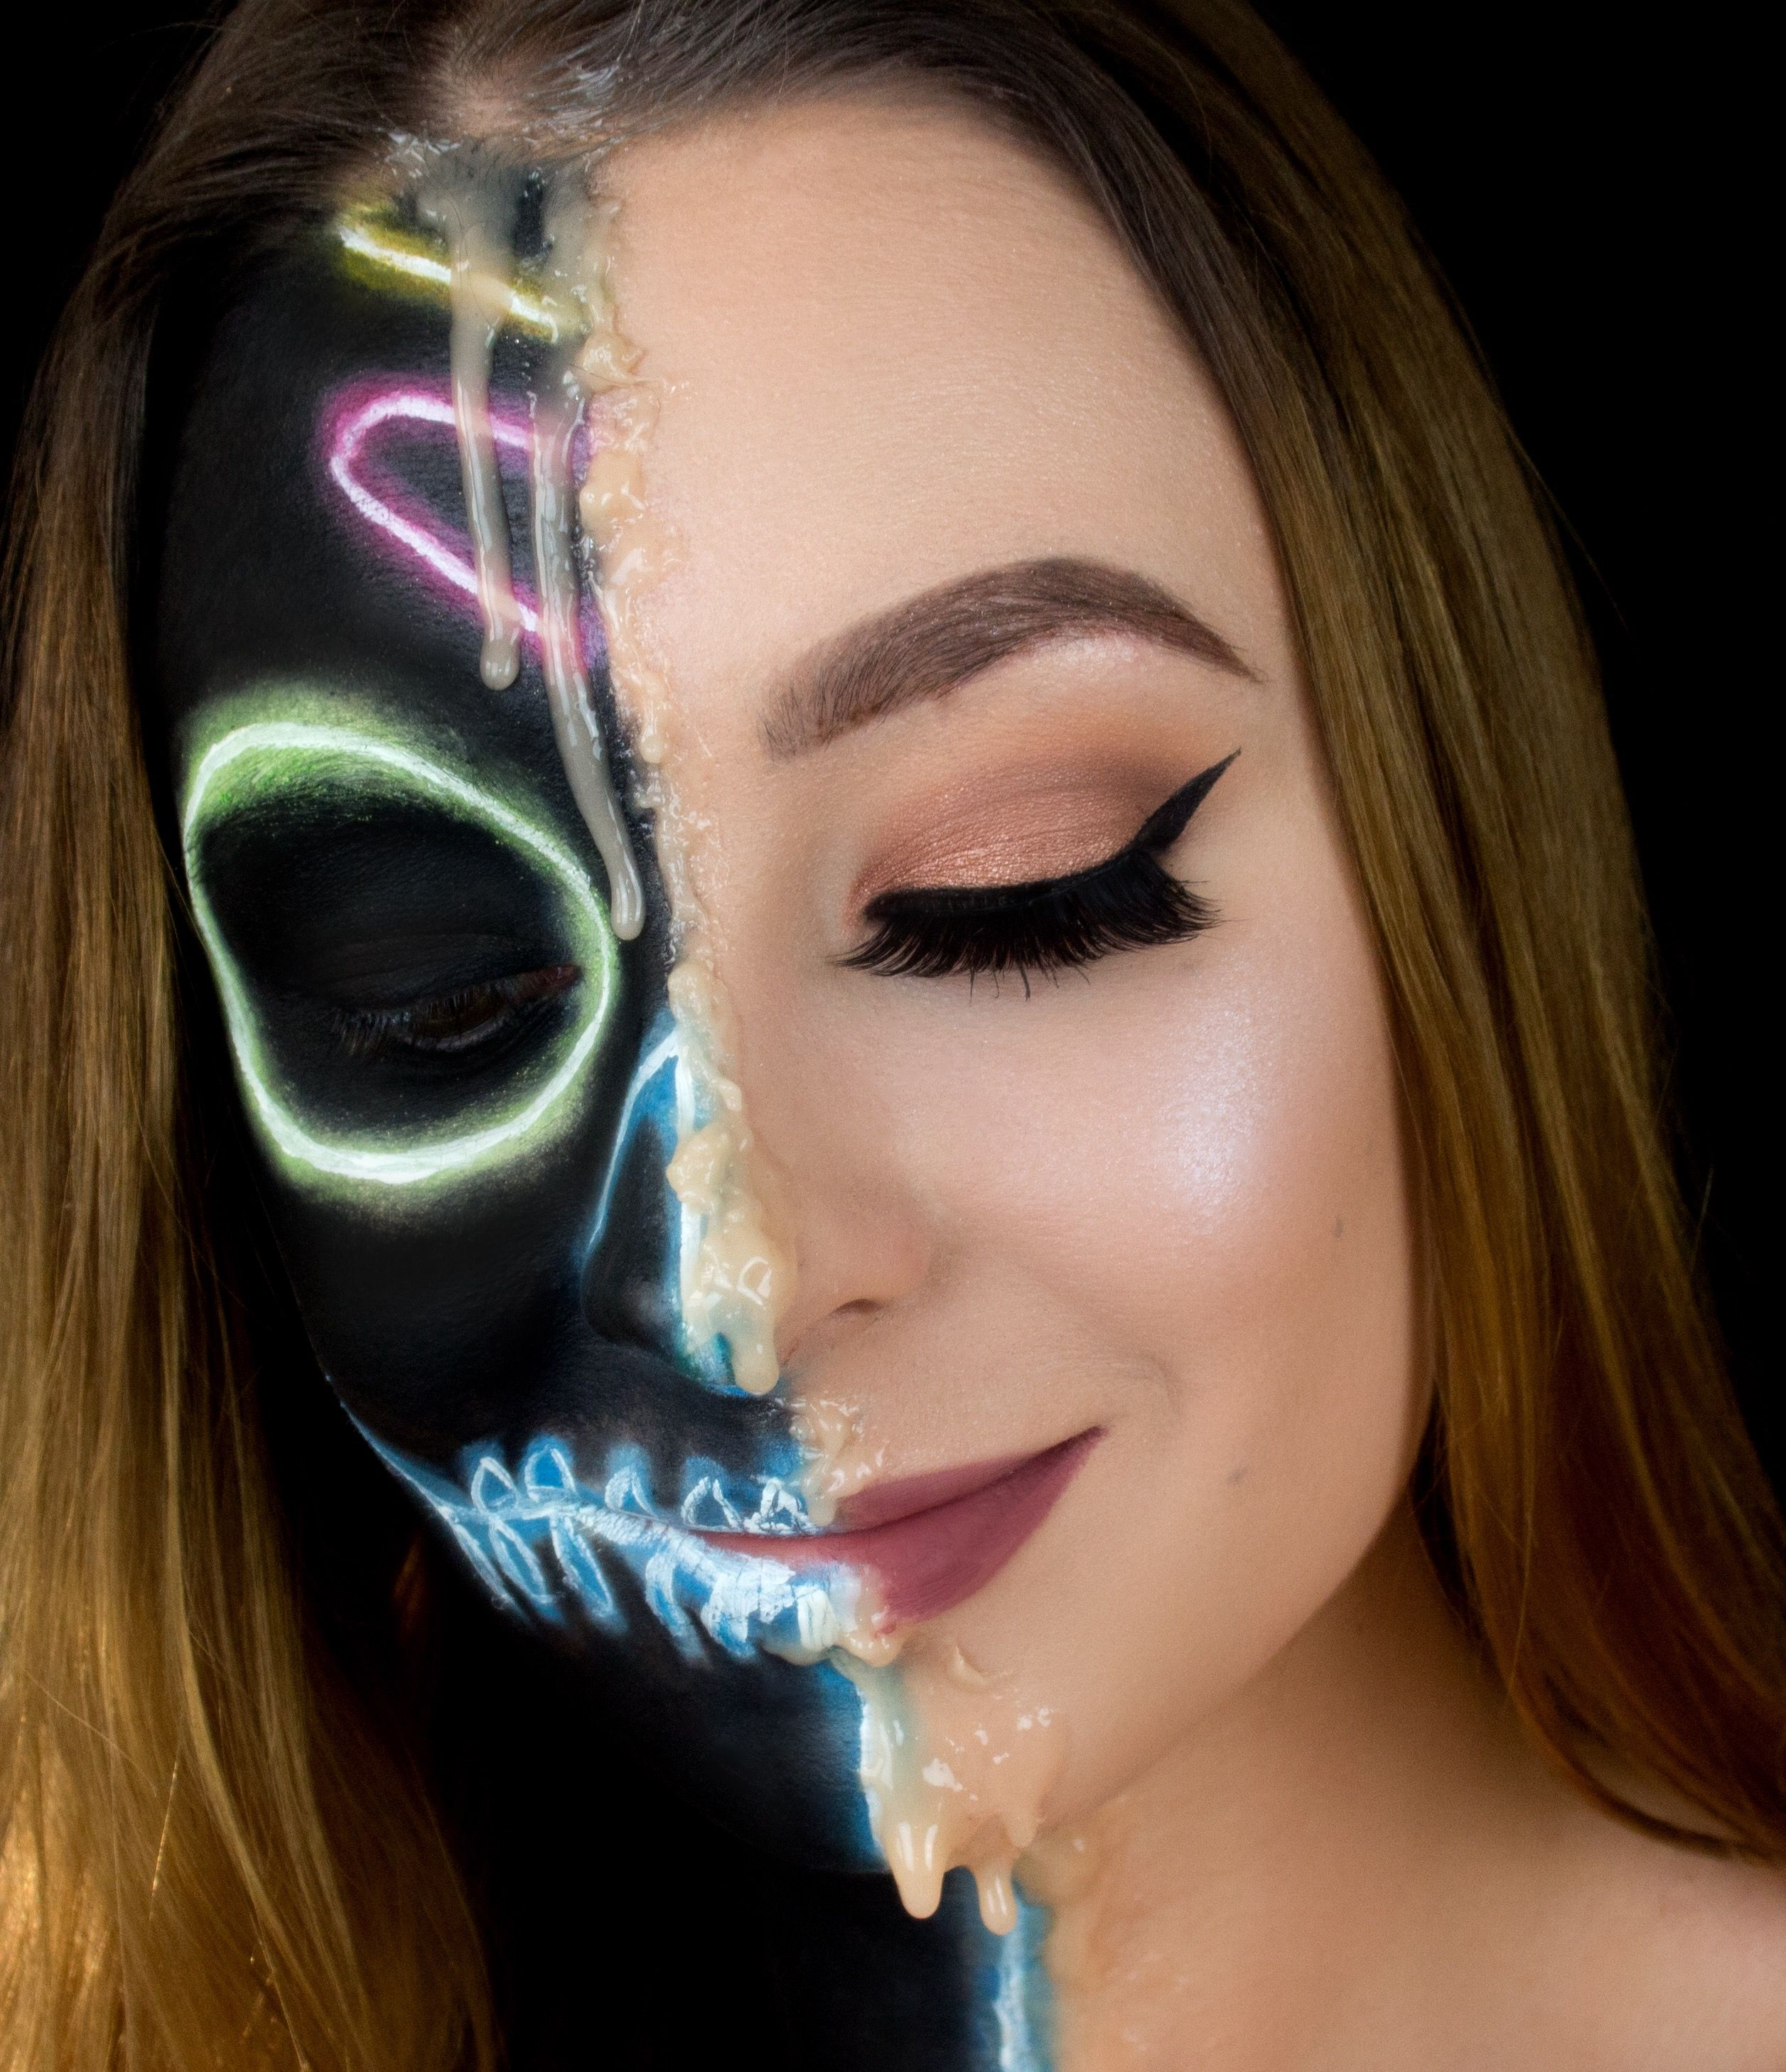 nyx face awards 2017 entry neon skull melted makeup tutorial ...